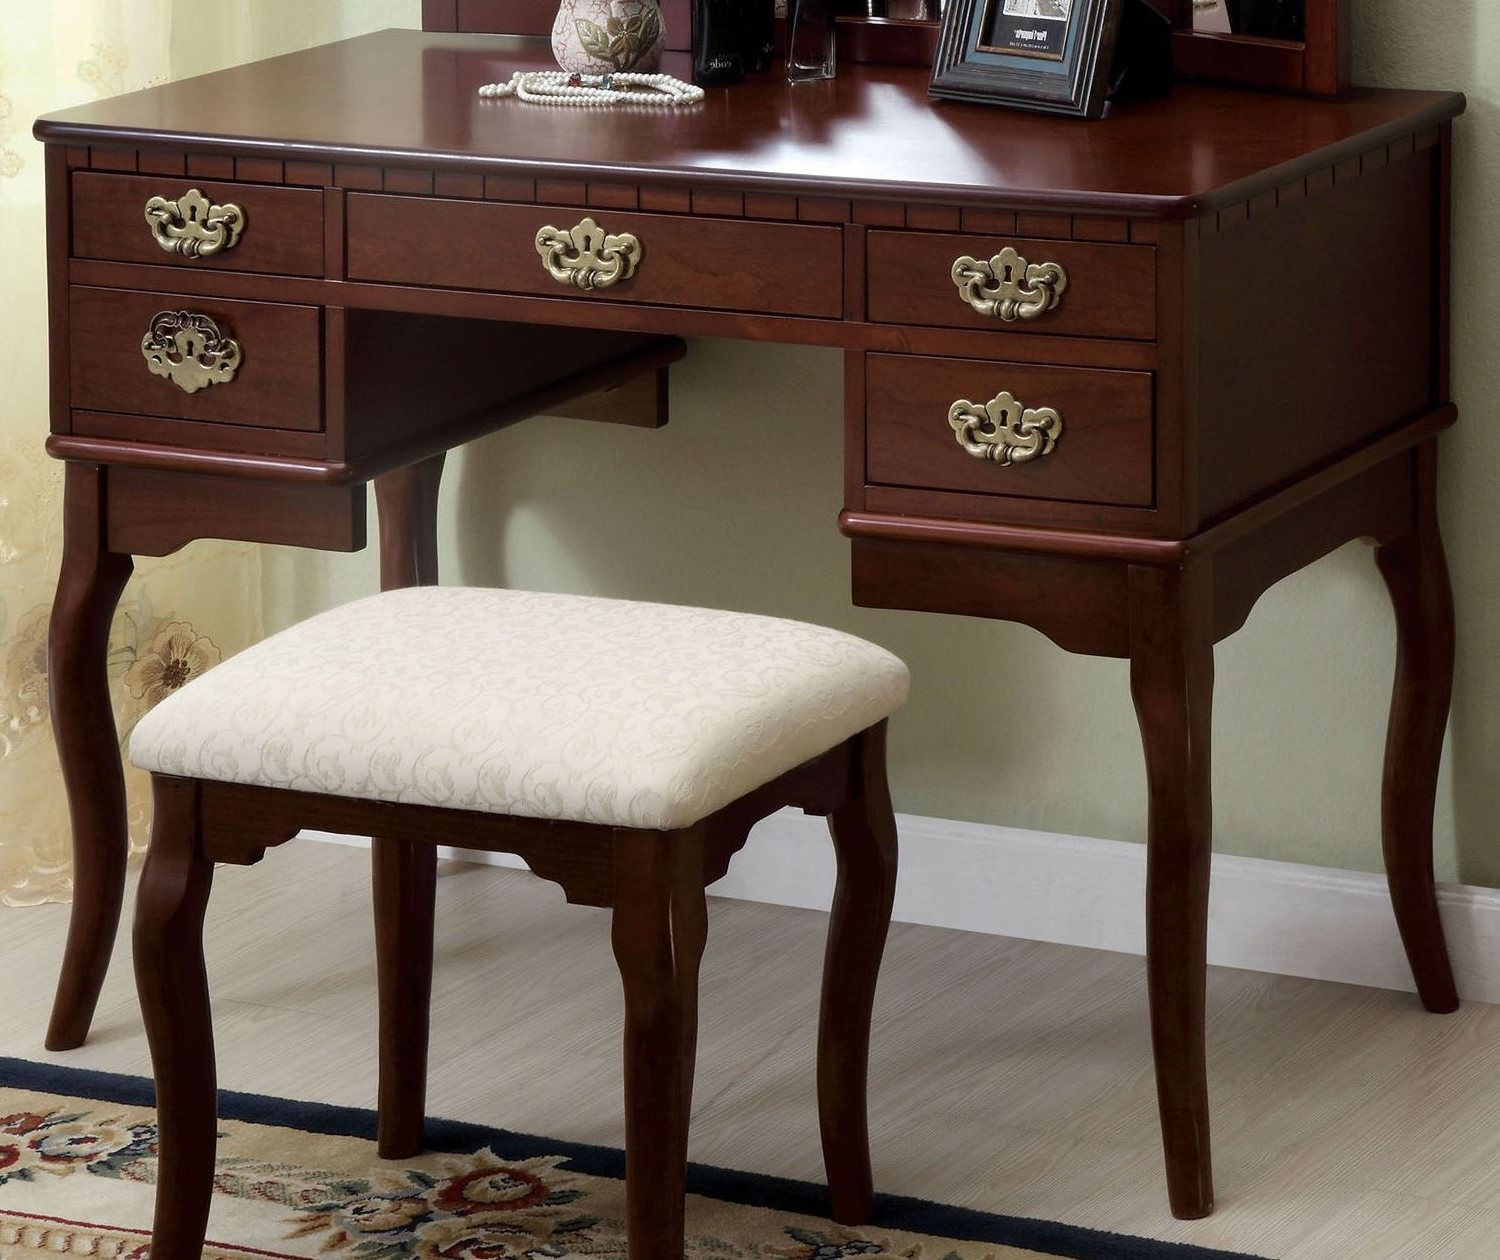 Furniture Of America Ashland Cherry Vanity Table – Ashland In Chari Media Center Tables (View 4 of 20)